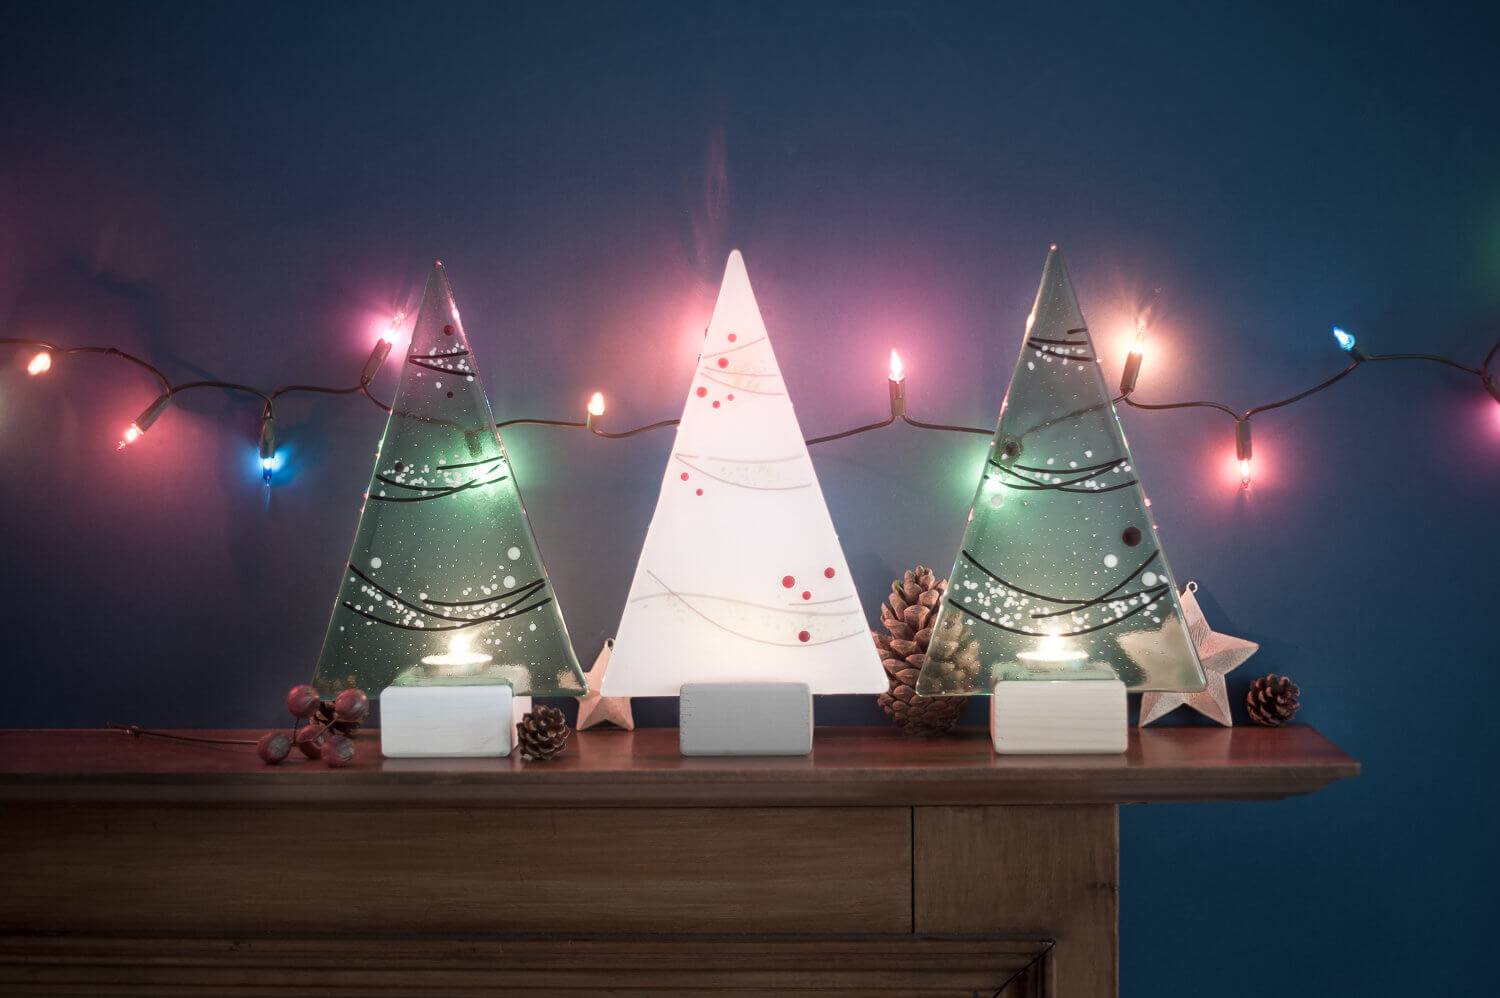 Glassware maker's Christmas trees photographed on the mantlepiece